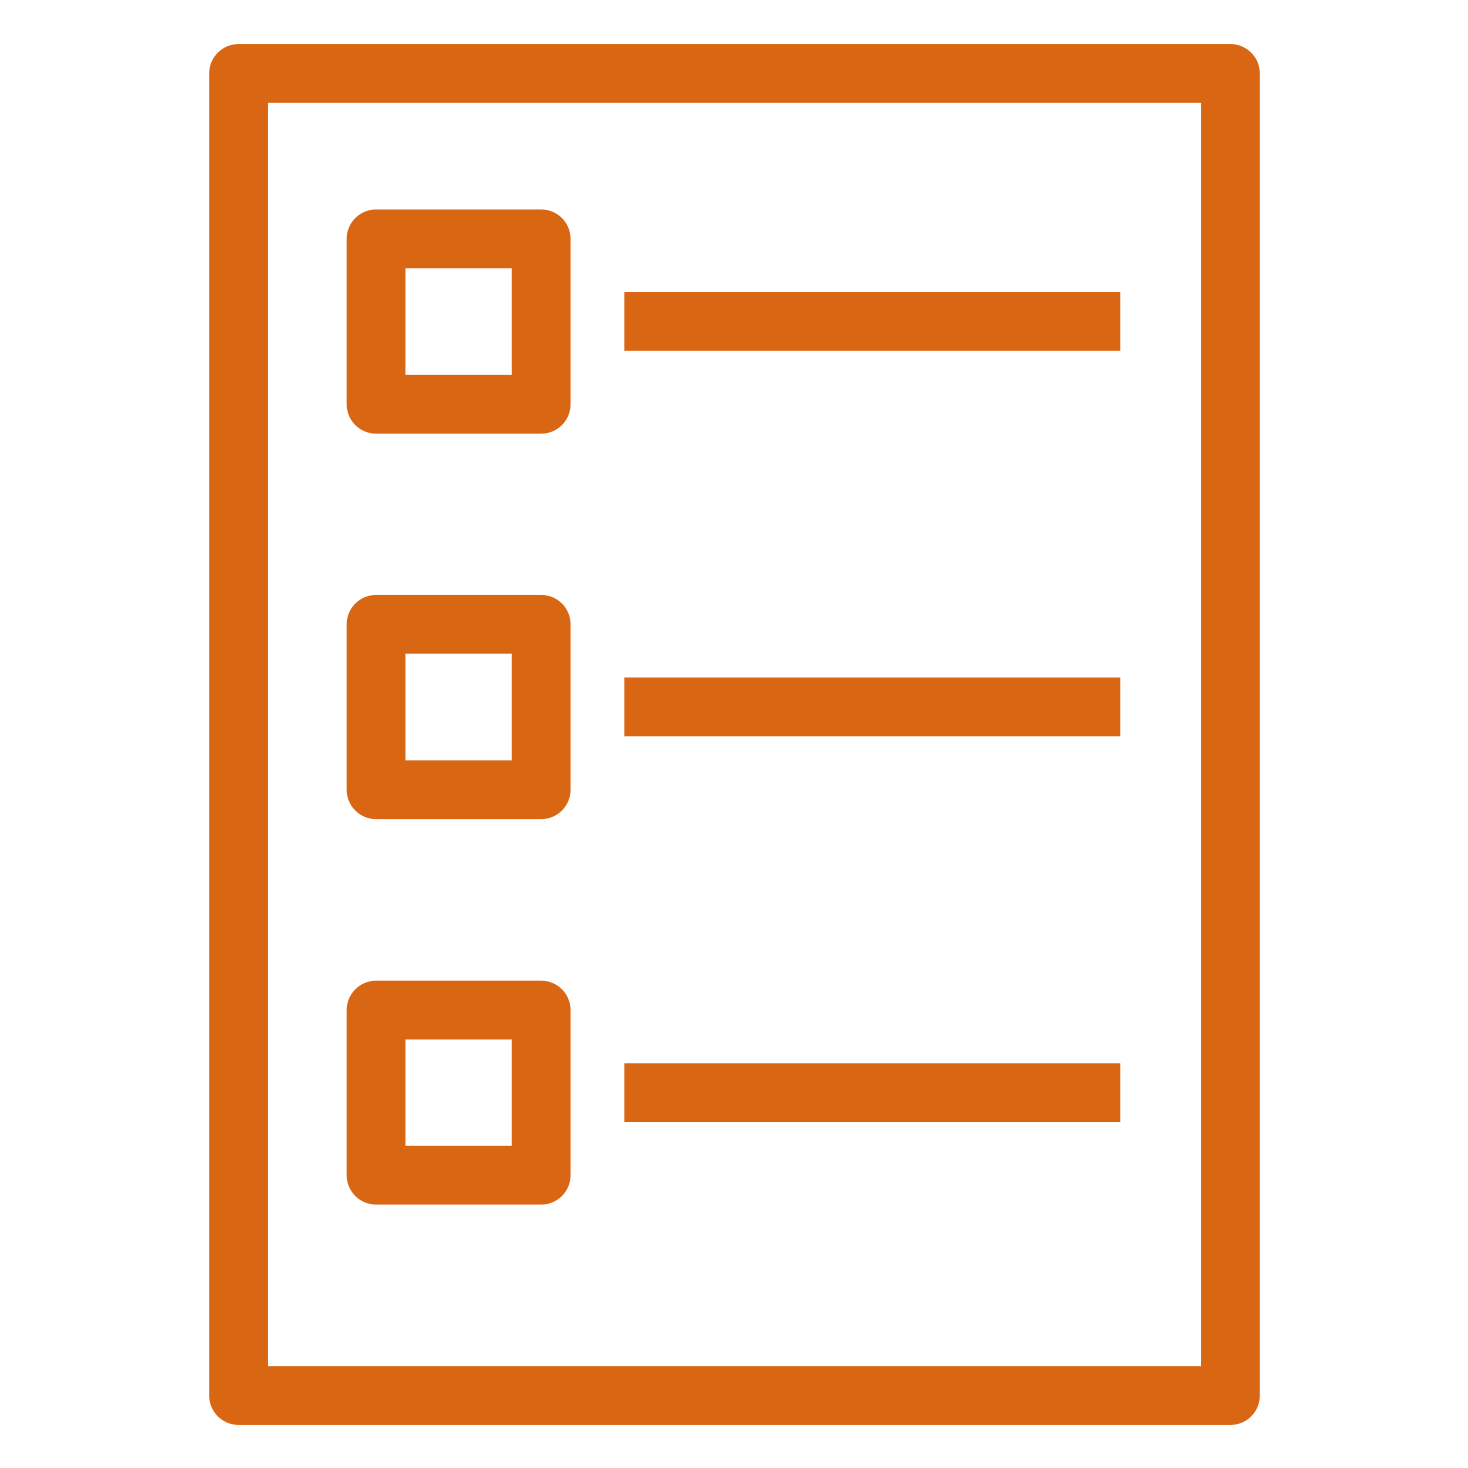 Icon depicting a checklist, with three rows consisting of a square checkbox and a horizontal line